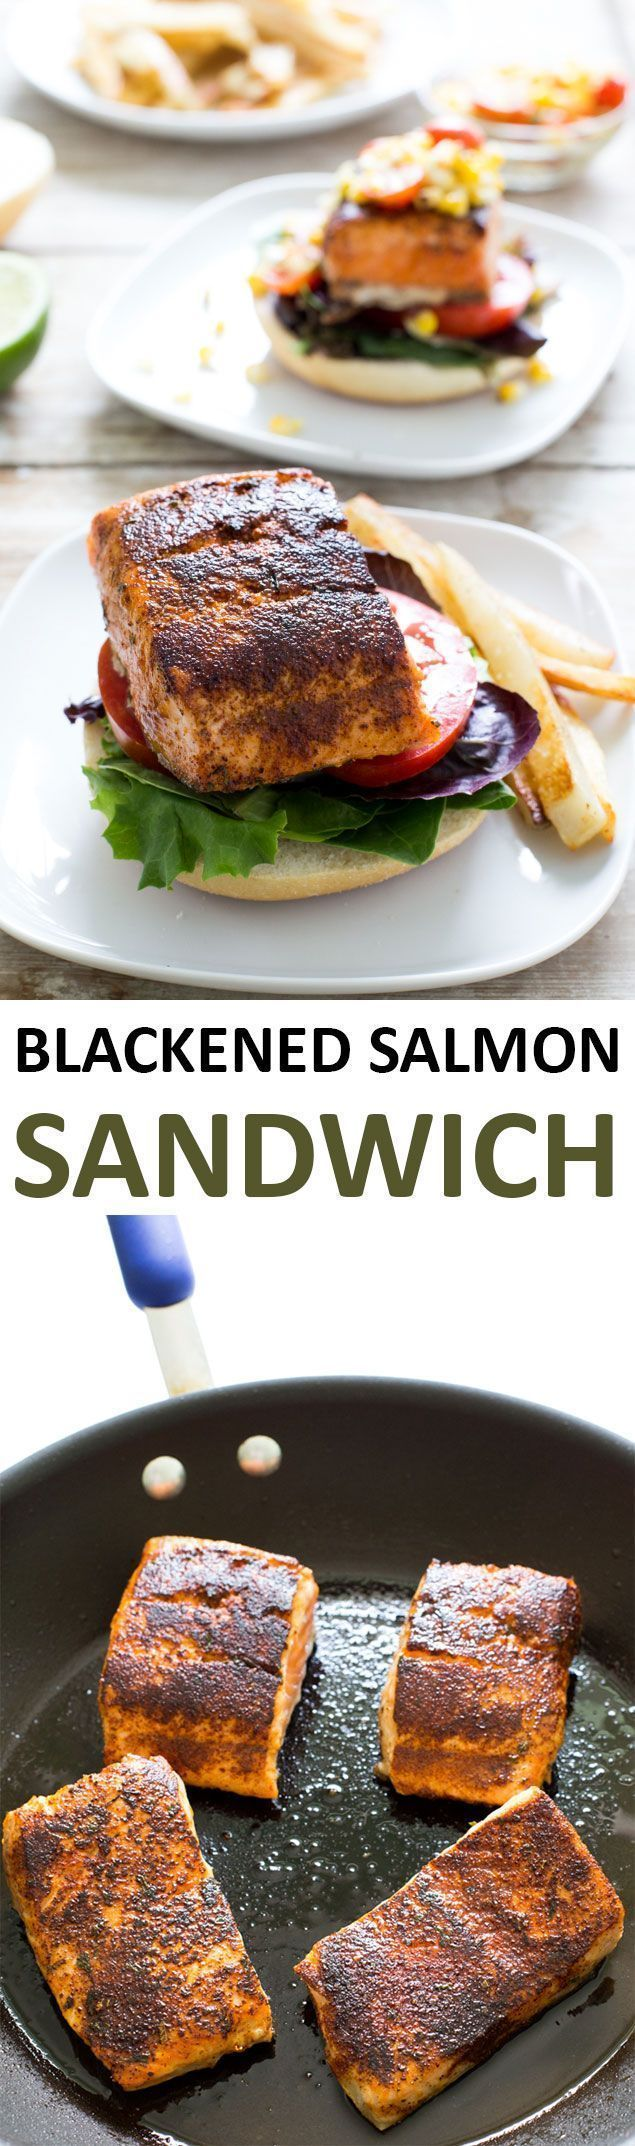 Blackened Salmon Sandwich with Grilled Corn Salsa | Recipe | Seafood ...